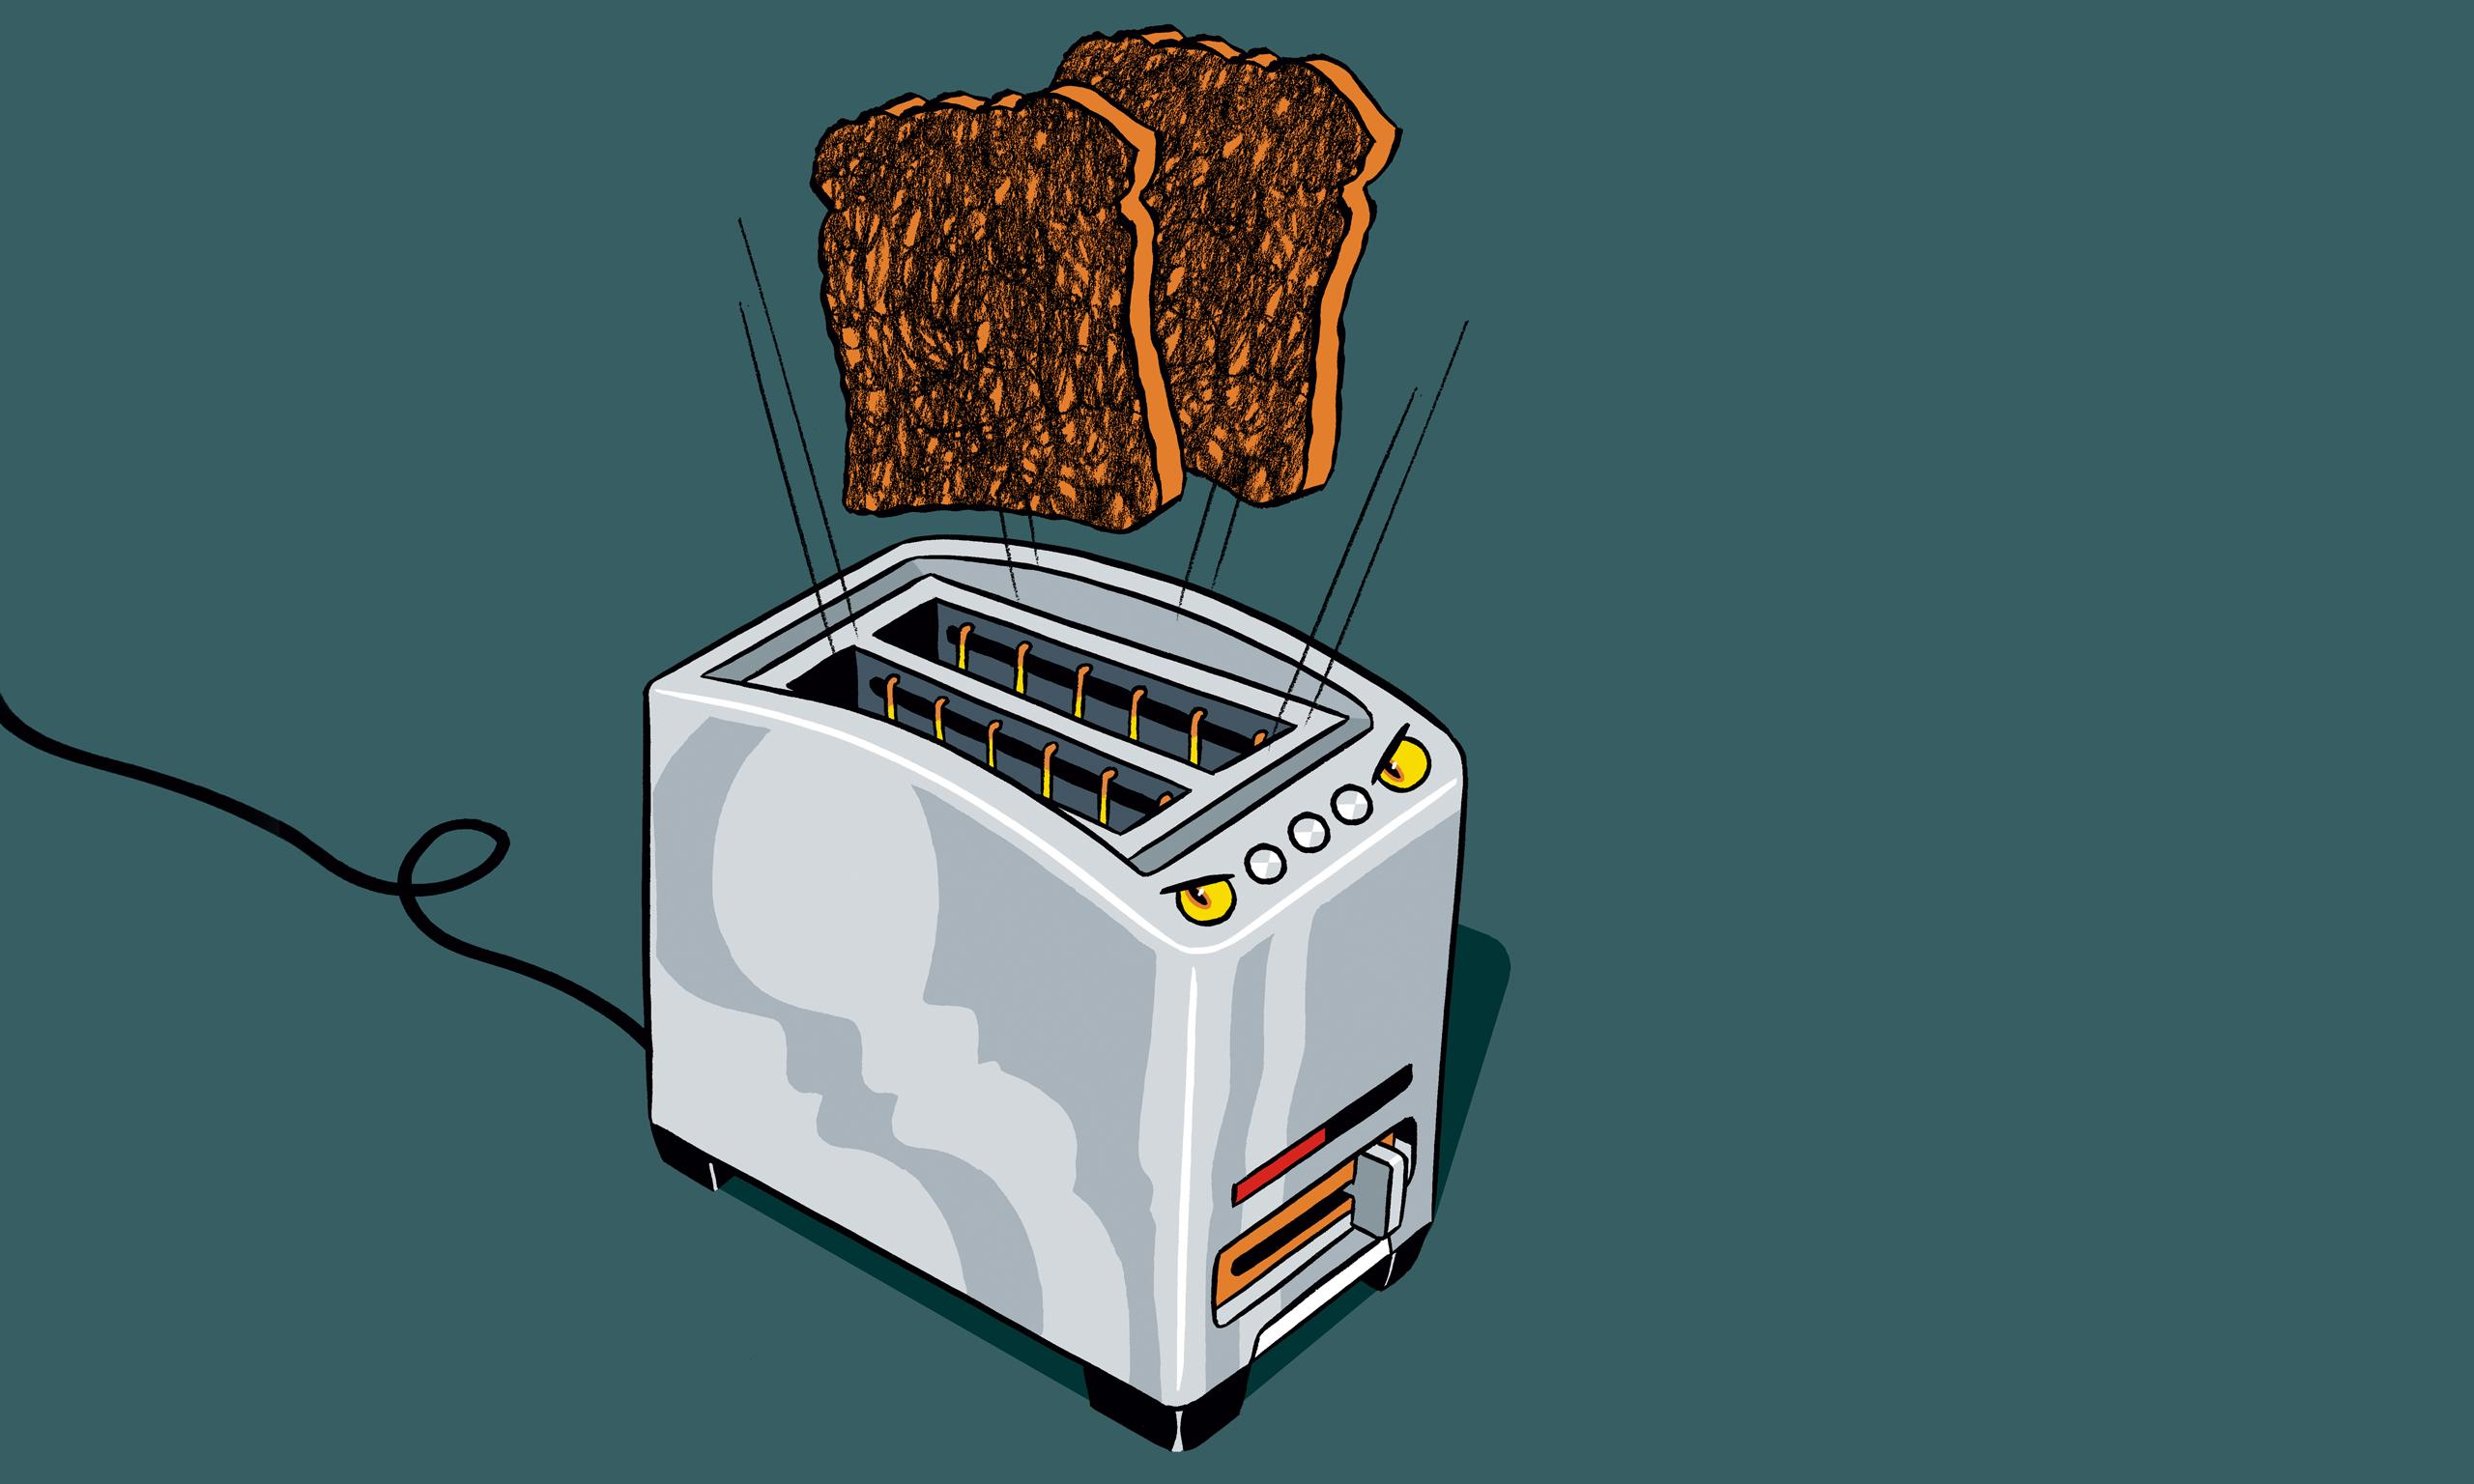 Beware the smart toaster: 18 tips for surviving the surveillance age